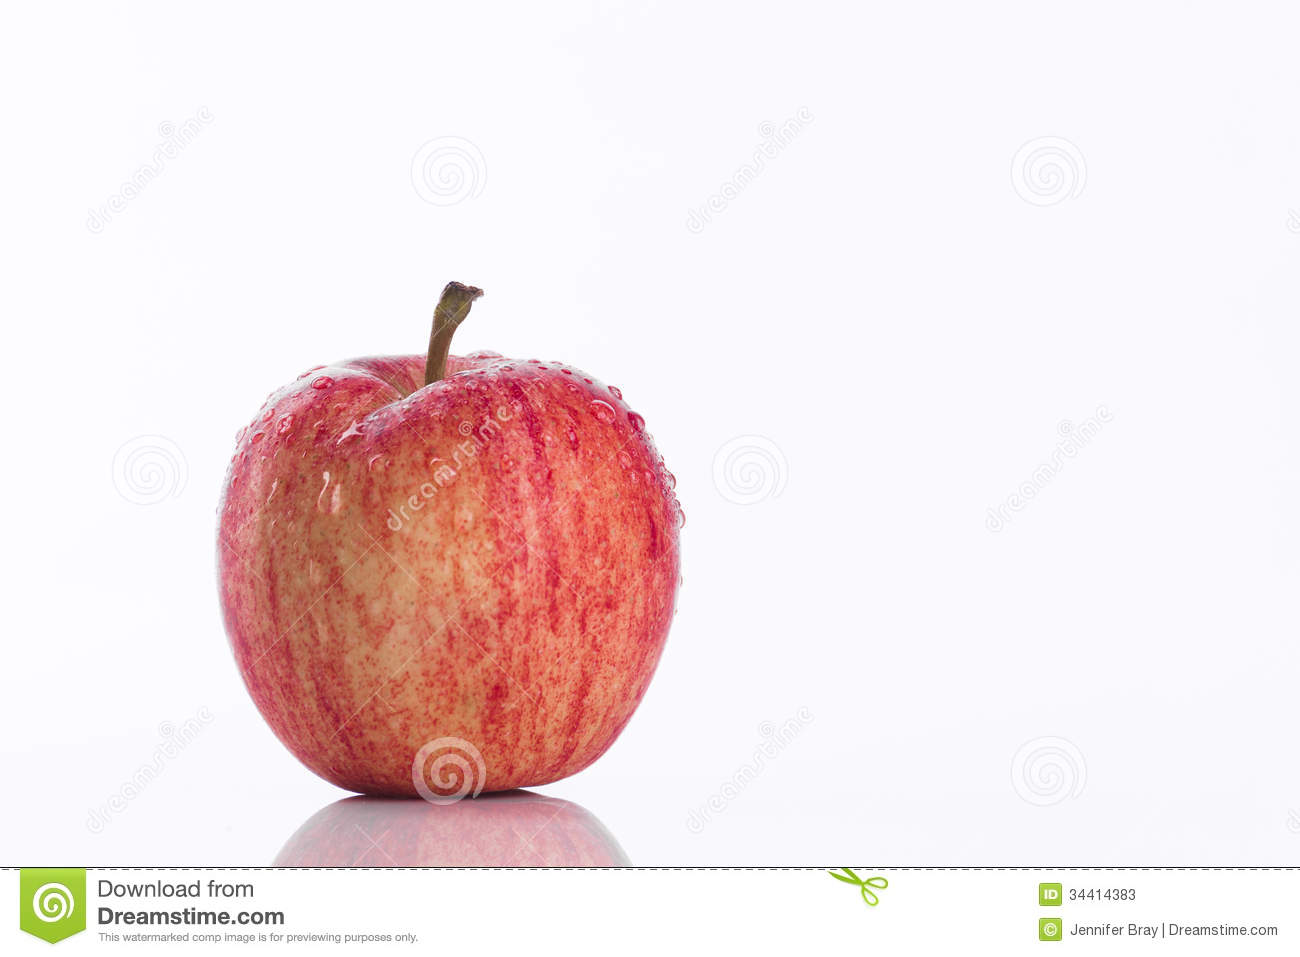 juicy red apple white background promoting healthy eating lifestyle choices 34414383